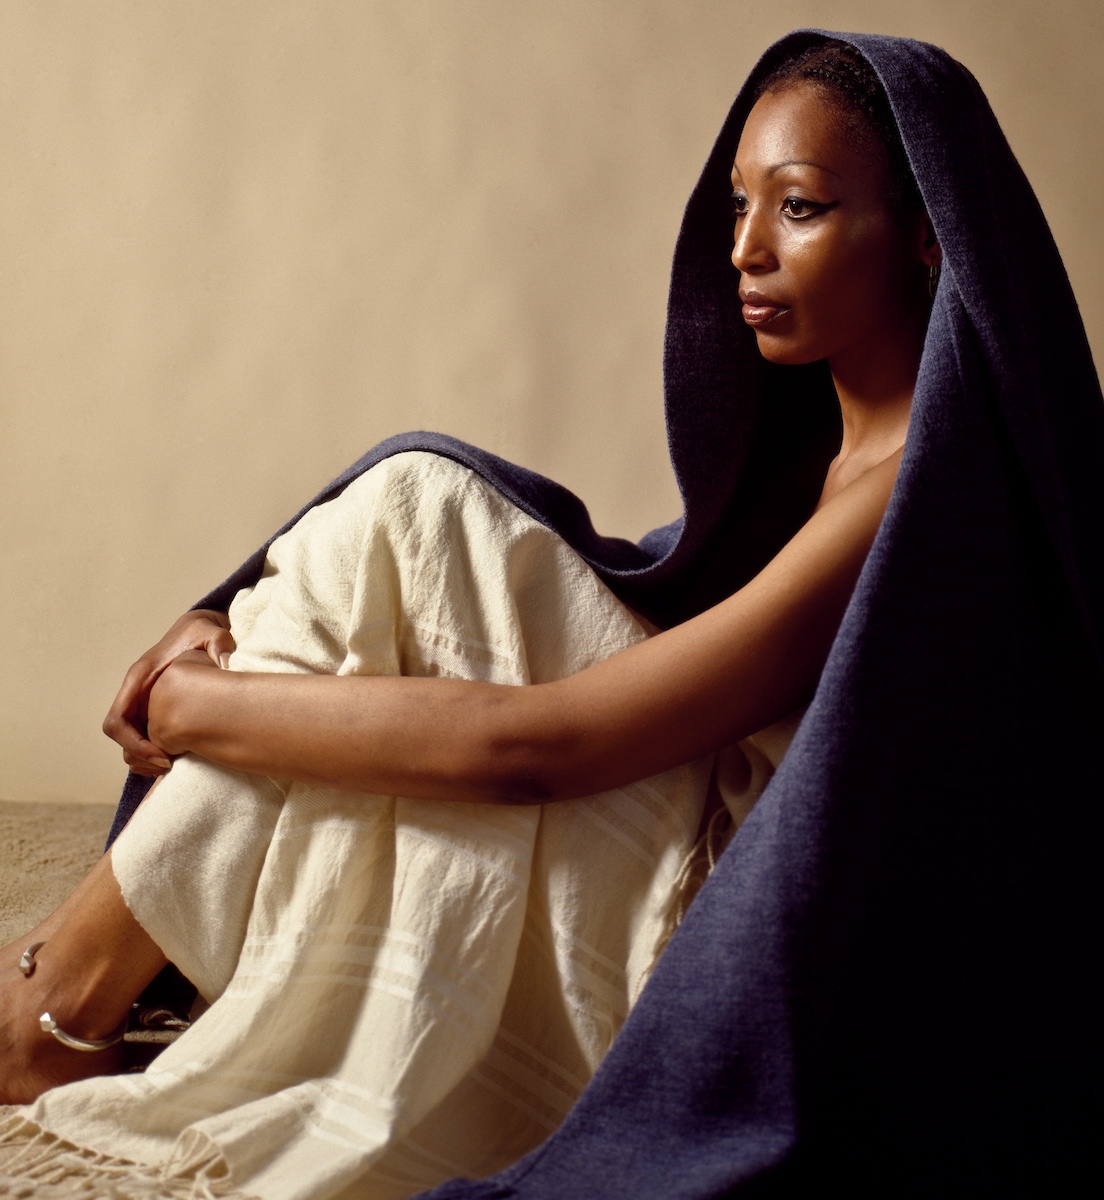 Nubian, Woman, Studio, Portrait, Portraiture